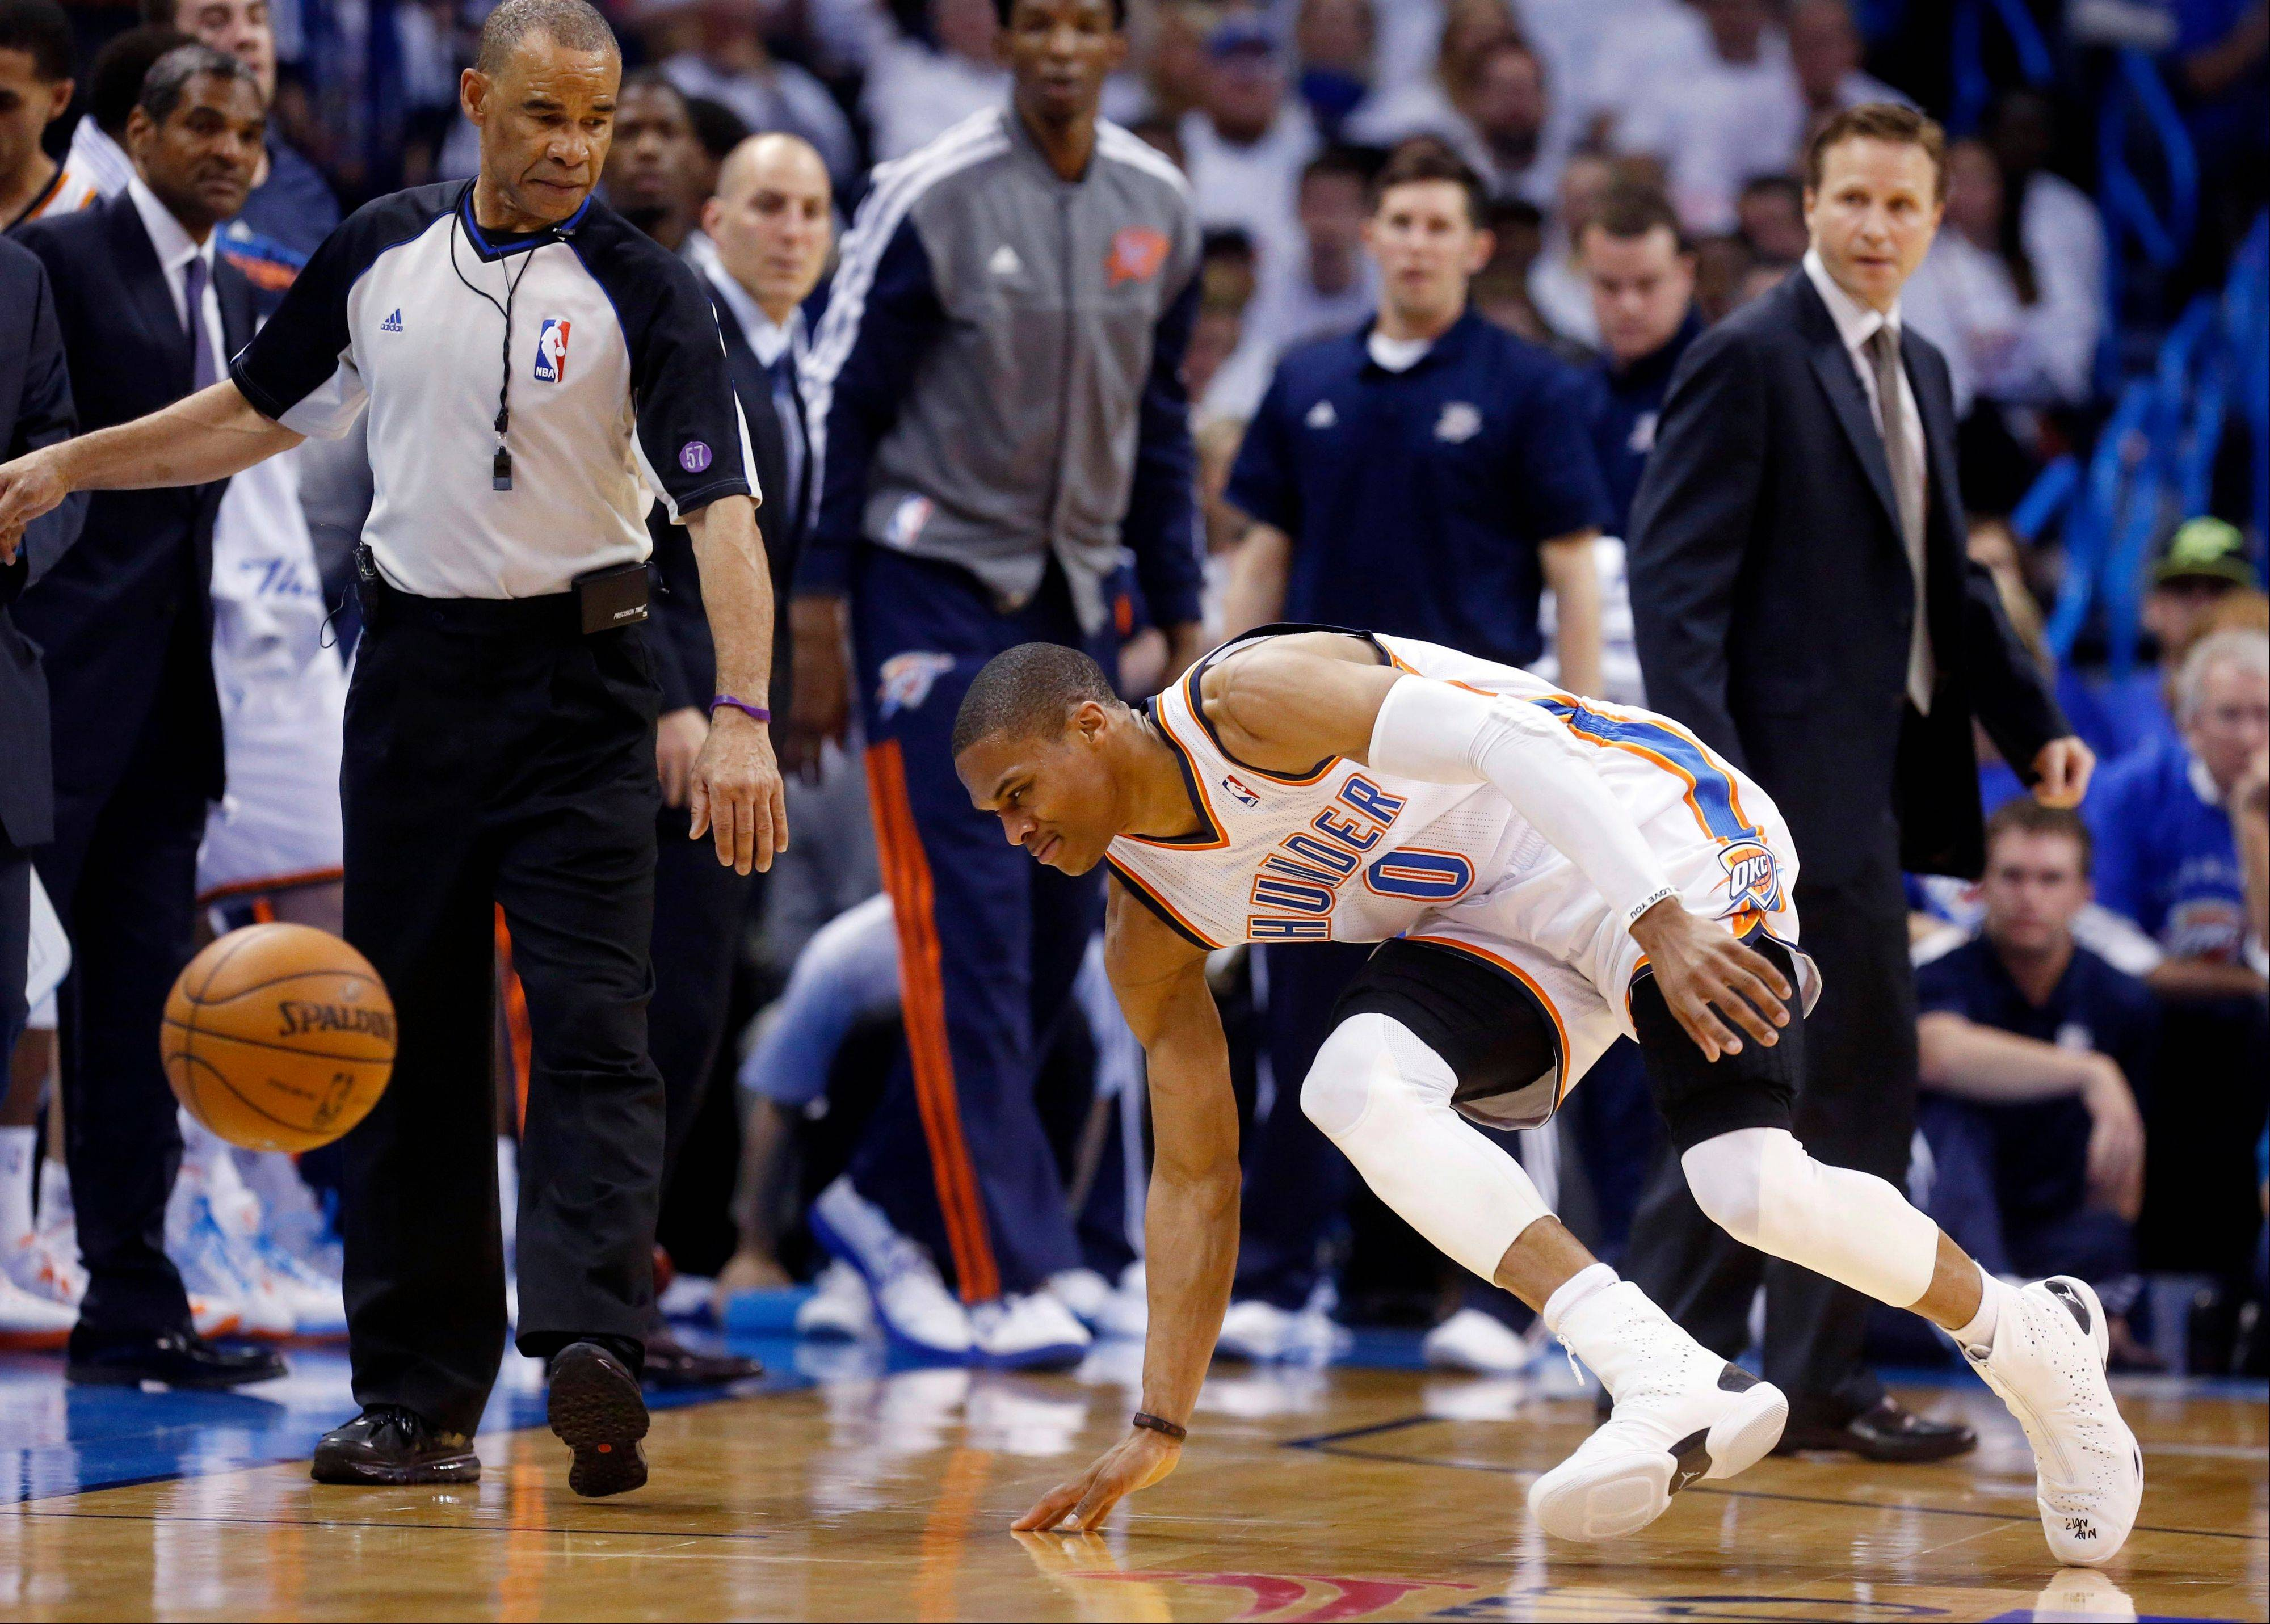 In this photo taken Wednesday, April 24, 2013, Oklahoma City Thunder guard Russell Westbrook stumbles after injuring his right knee in the second quarter of Game 2 of a first-round NBA basketball playoff series against the Houston Rockets in Oklahoma City. Westbrook, who remained in the game, will have surgery to repair a torn meniscus in his right knee and be out indefinitely, dealing a harsh blow to the City Thunder�s championship chances.